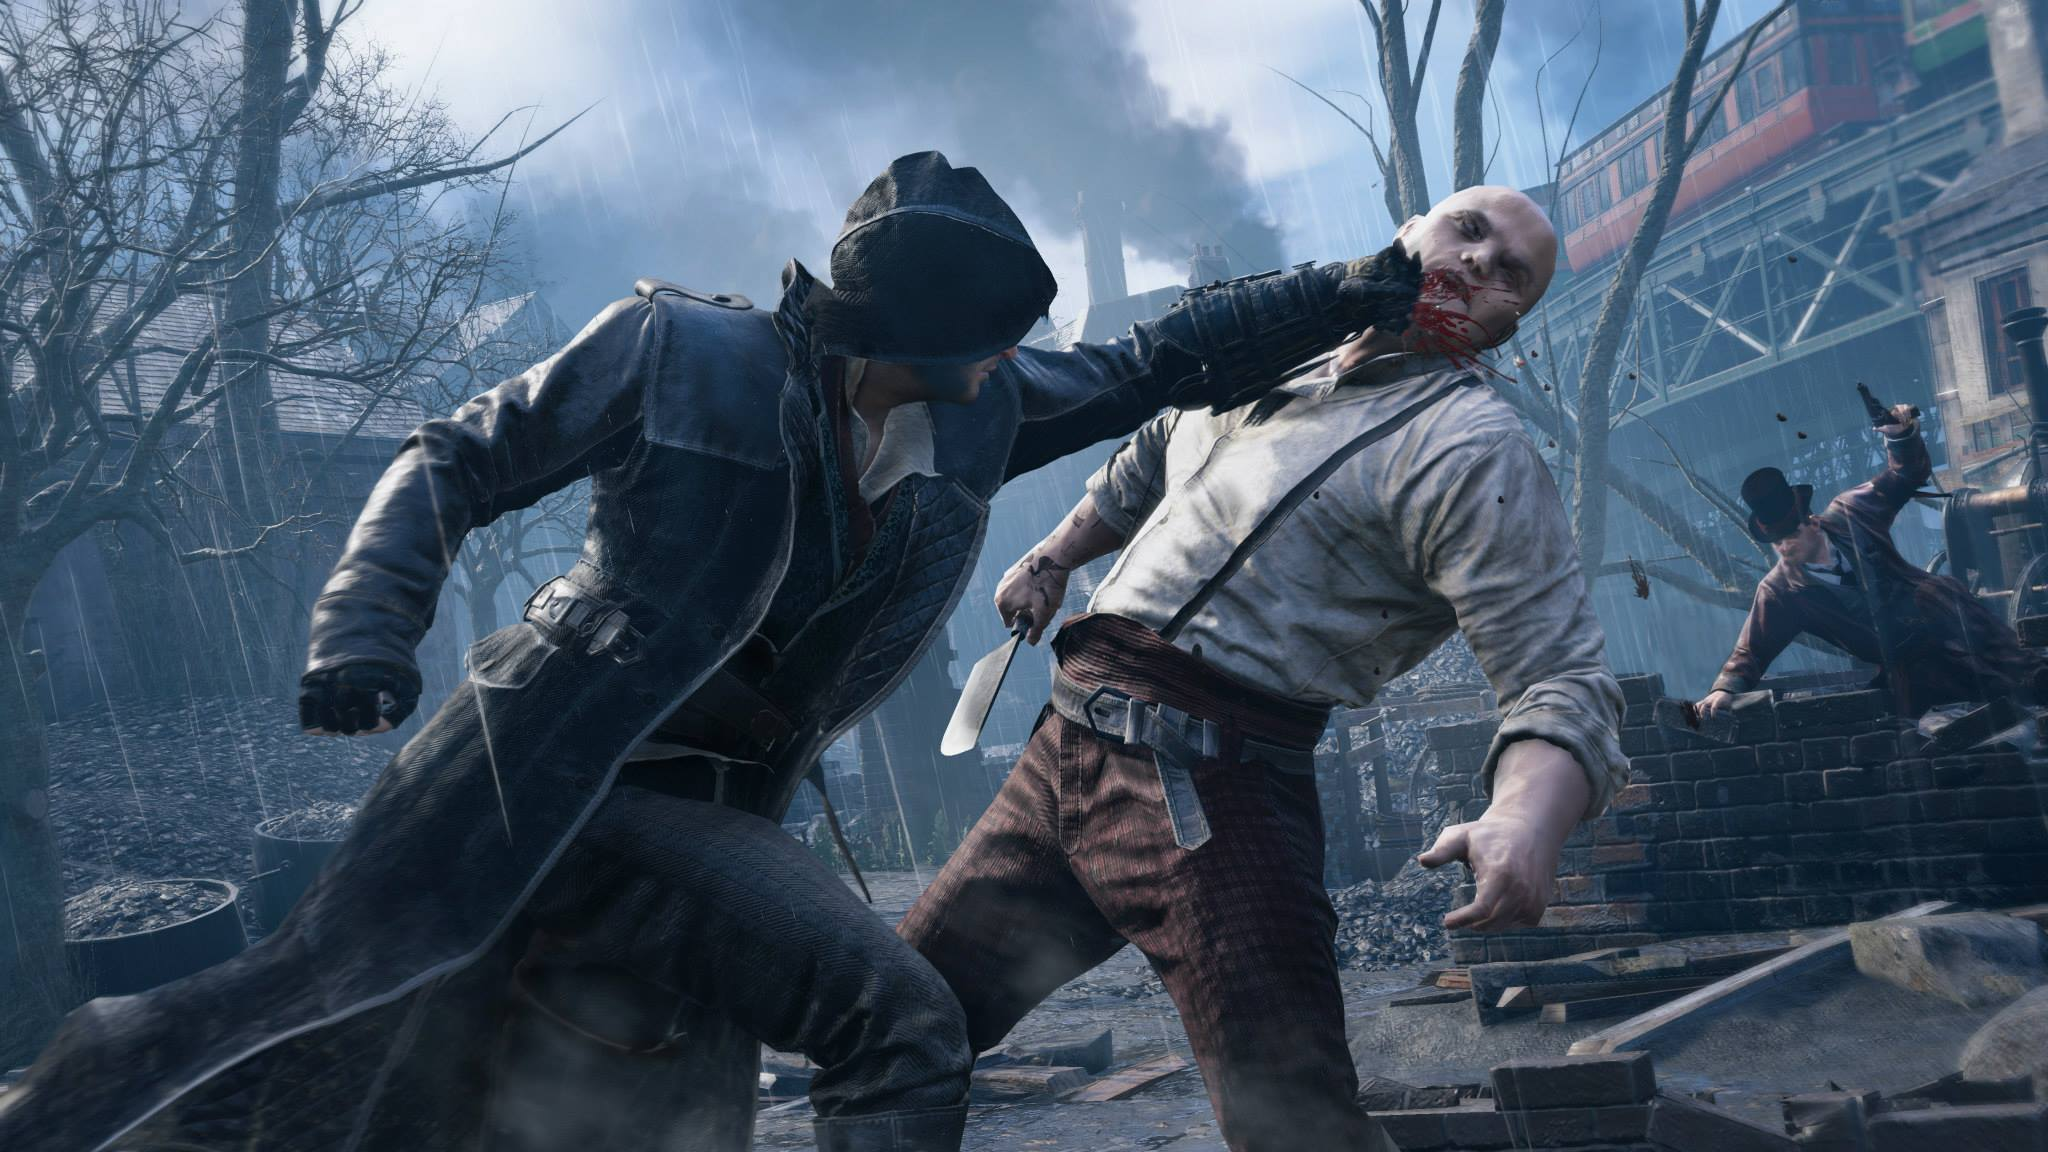 Assassins creed syndicate hd wallpapers free download assassins creed syndicate wallpapers voltagebd Gallery